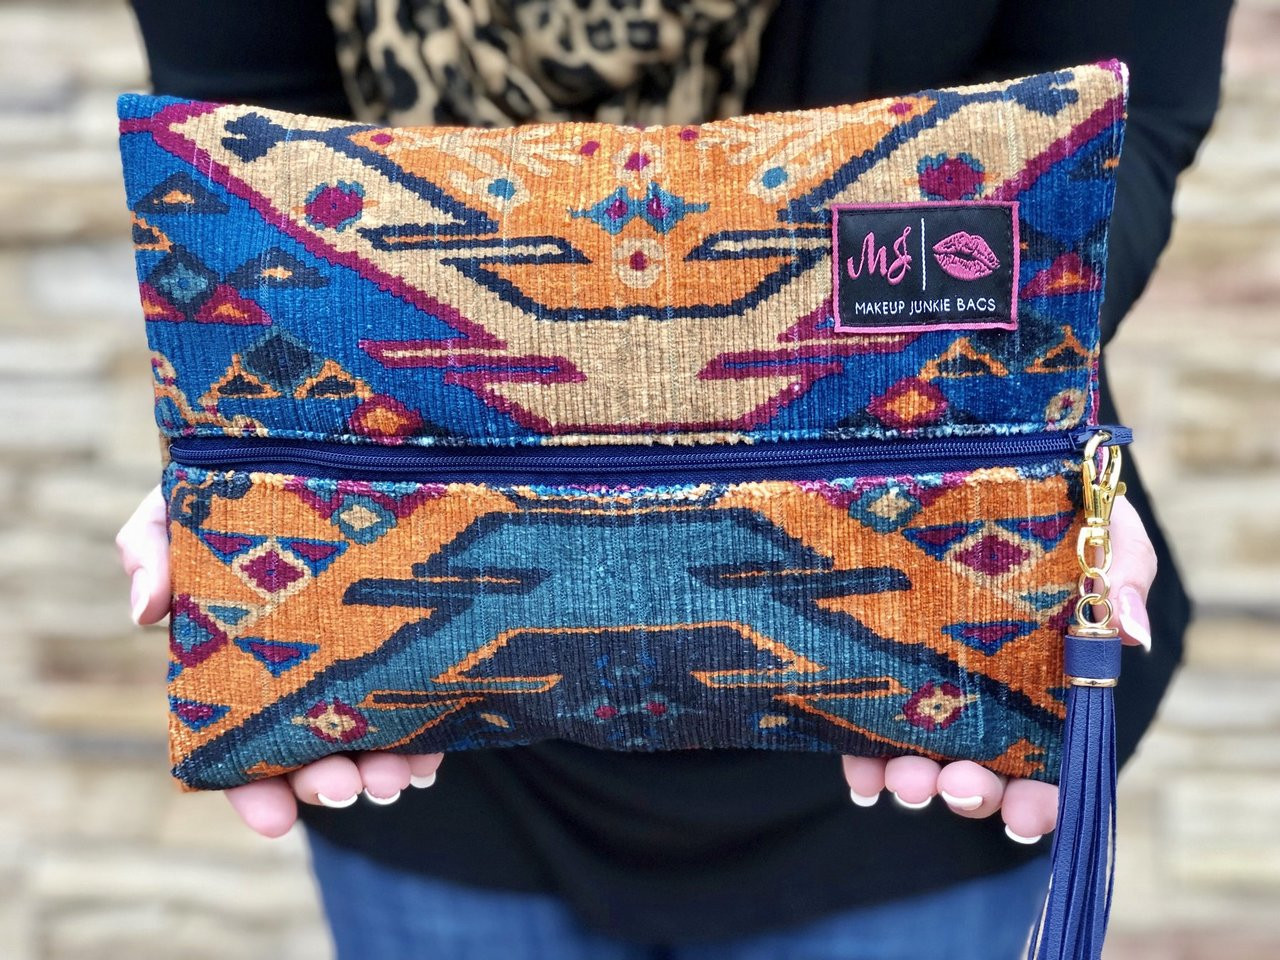 b64d51024dff Moroccan Makeup Junkie Bag Free shipping